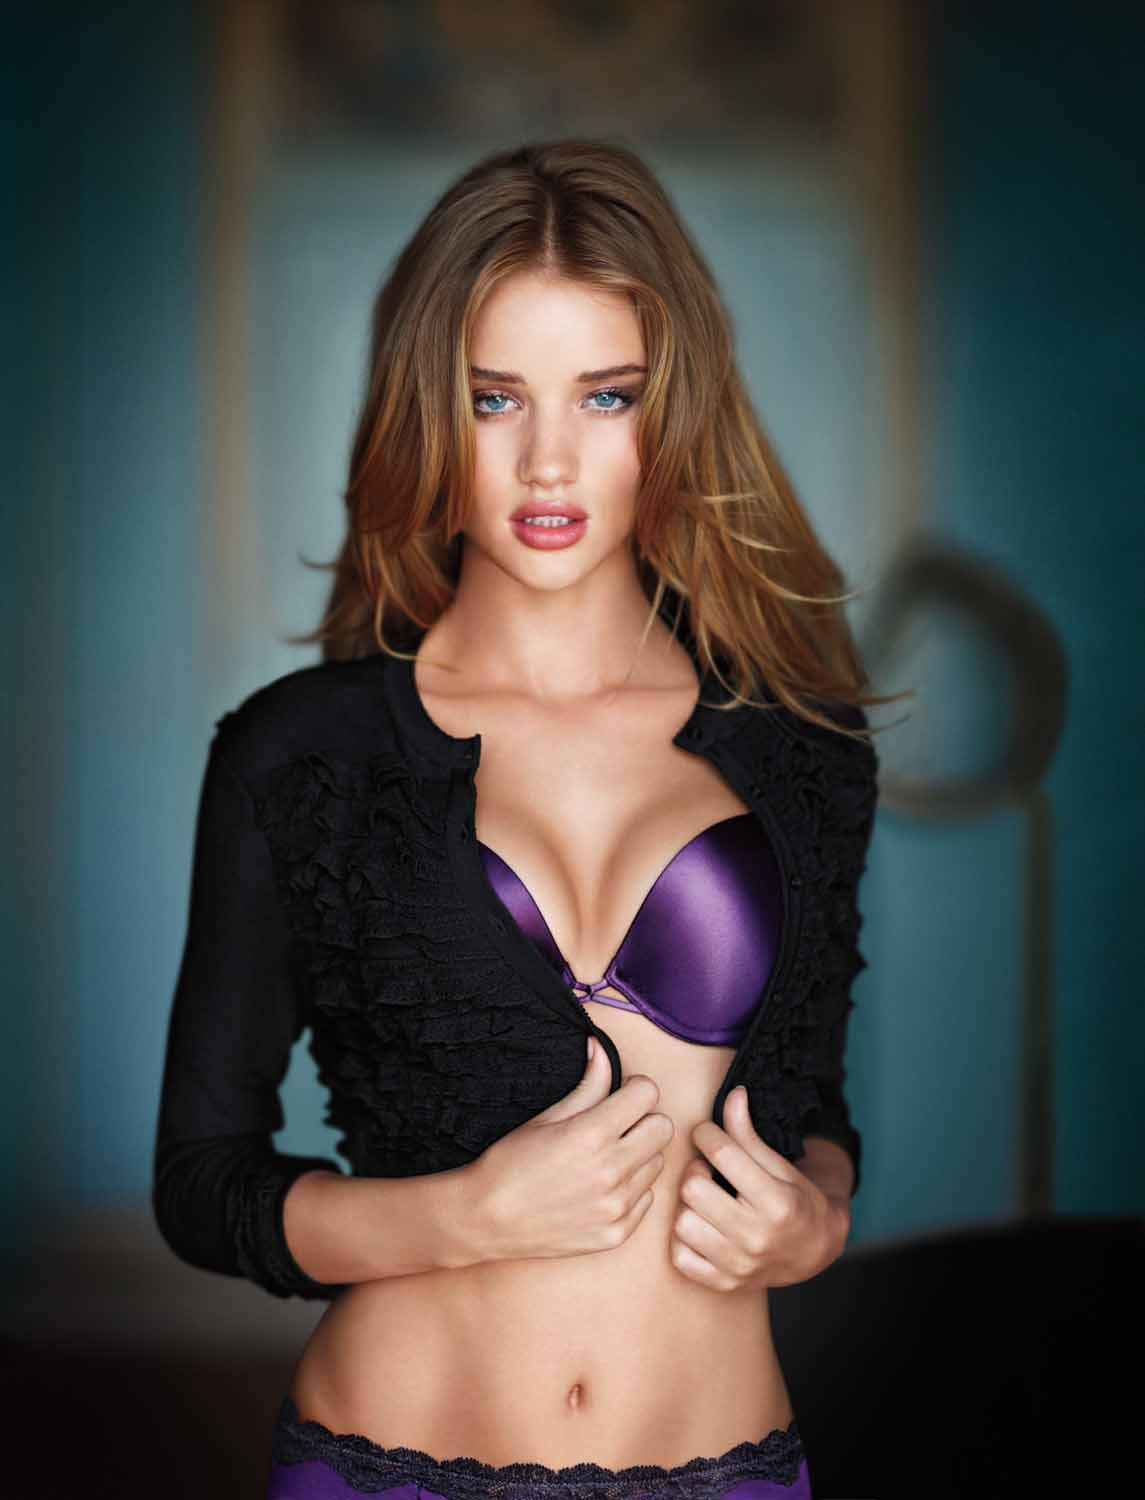 Rosie Huntington Whiteley Desktop Wallpaper Overallsite